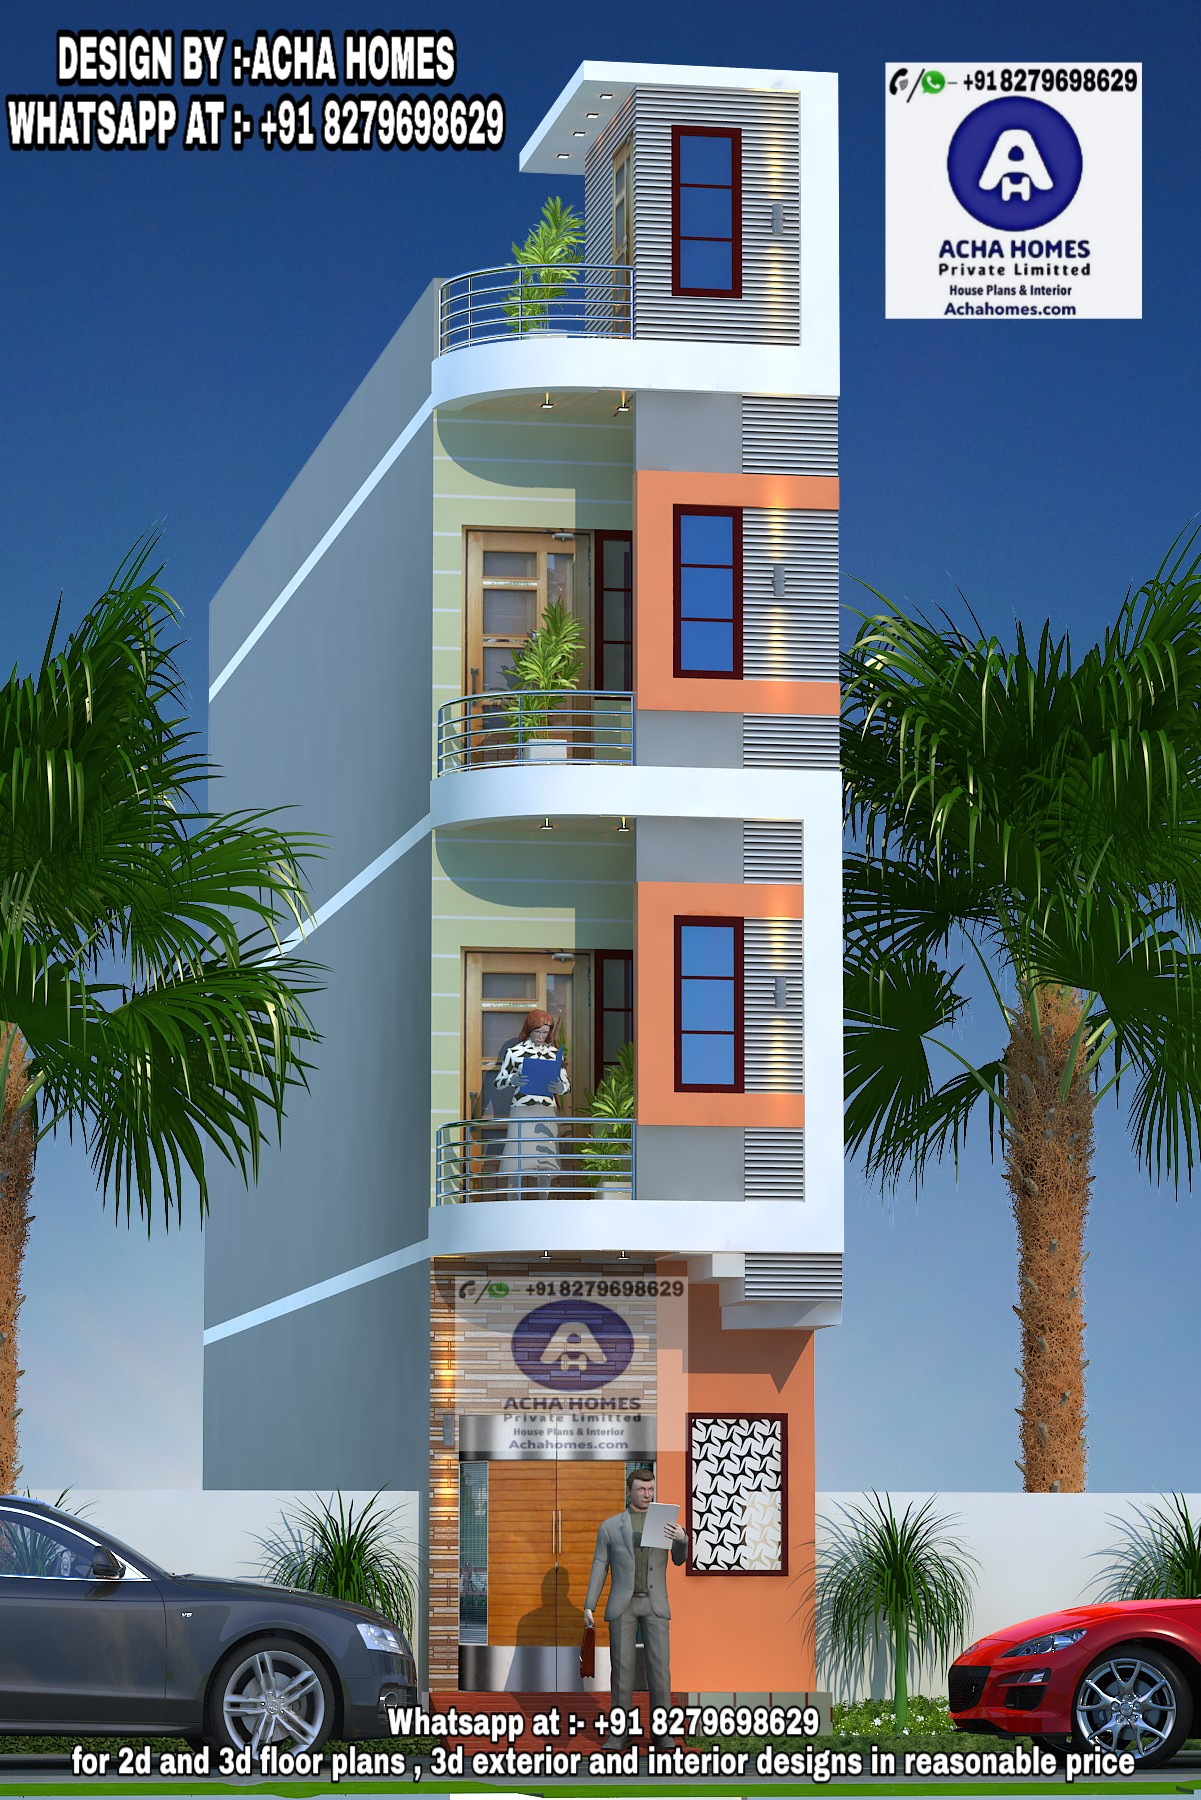 NORTH INDIANS MODERN HOME DESIGN